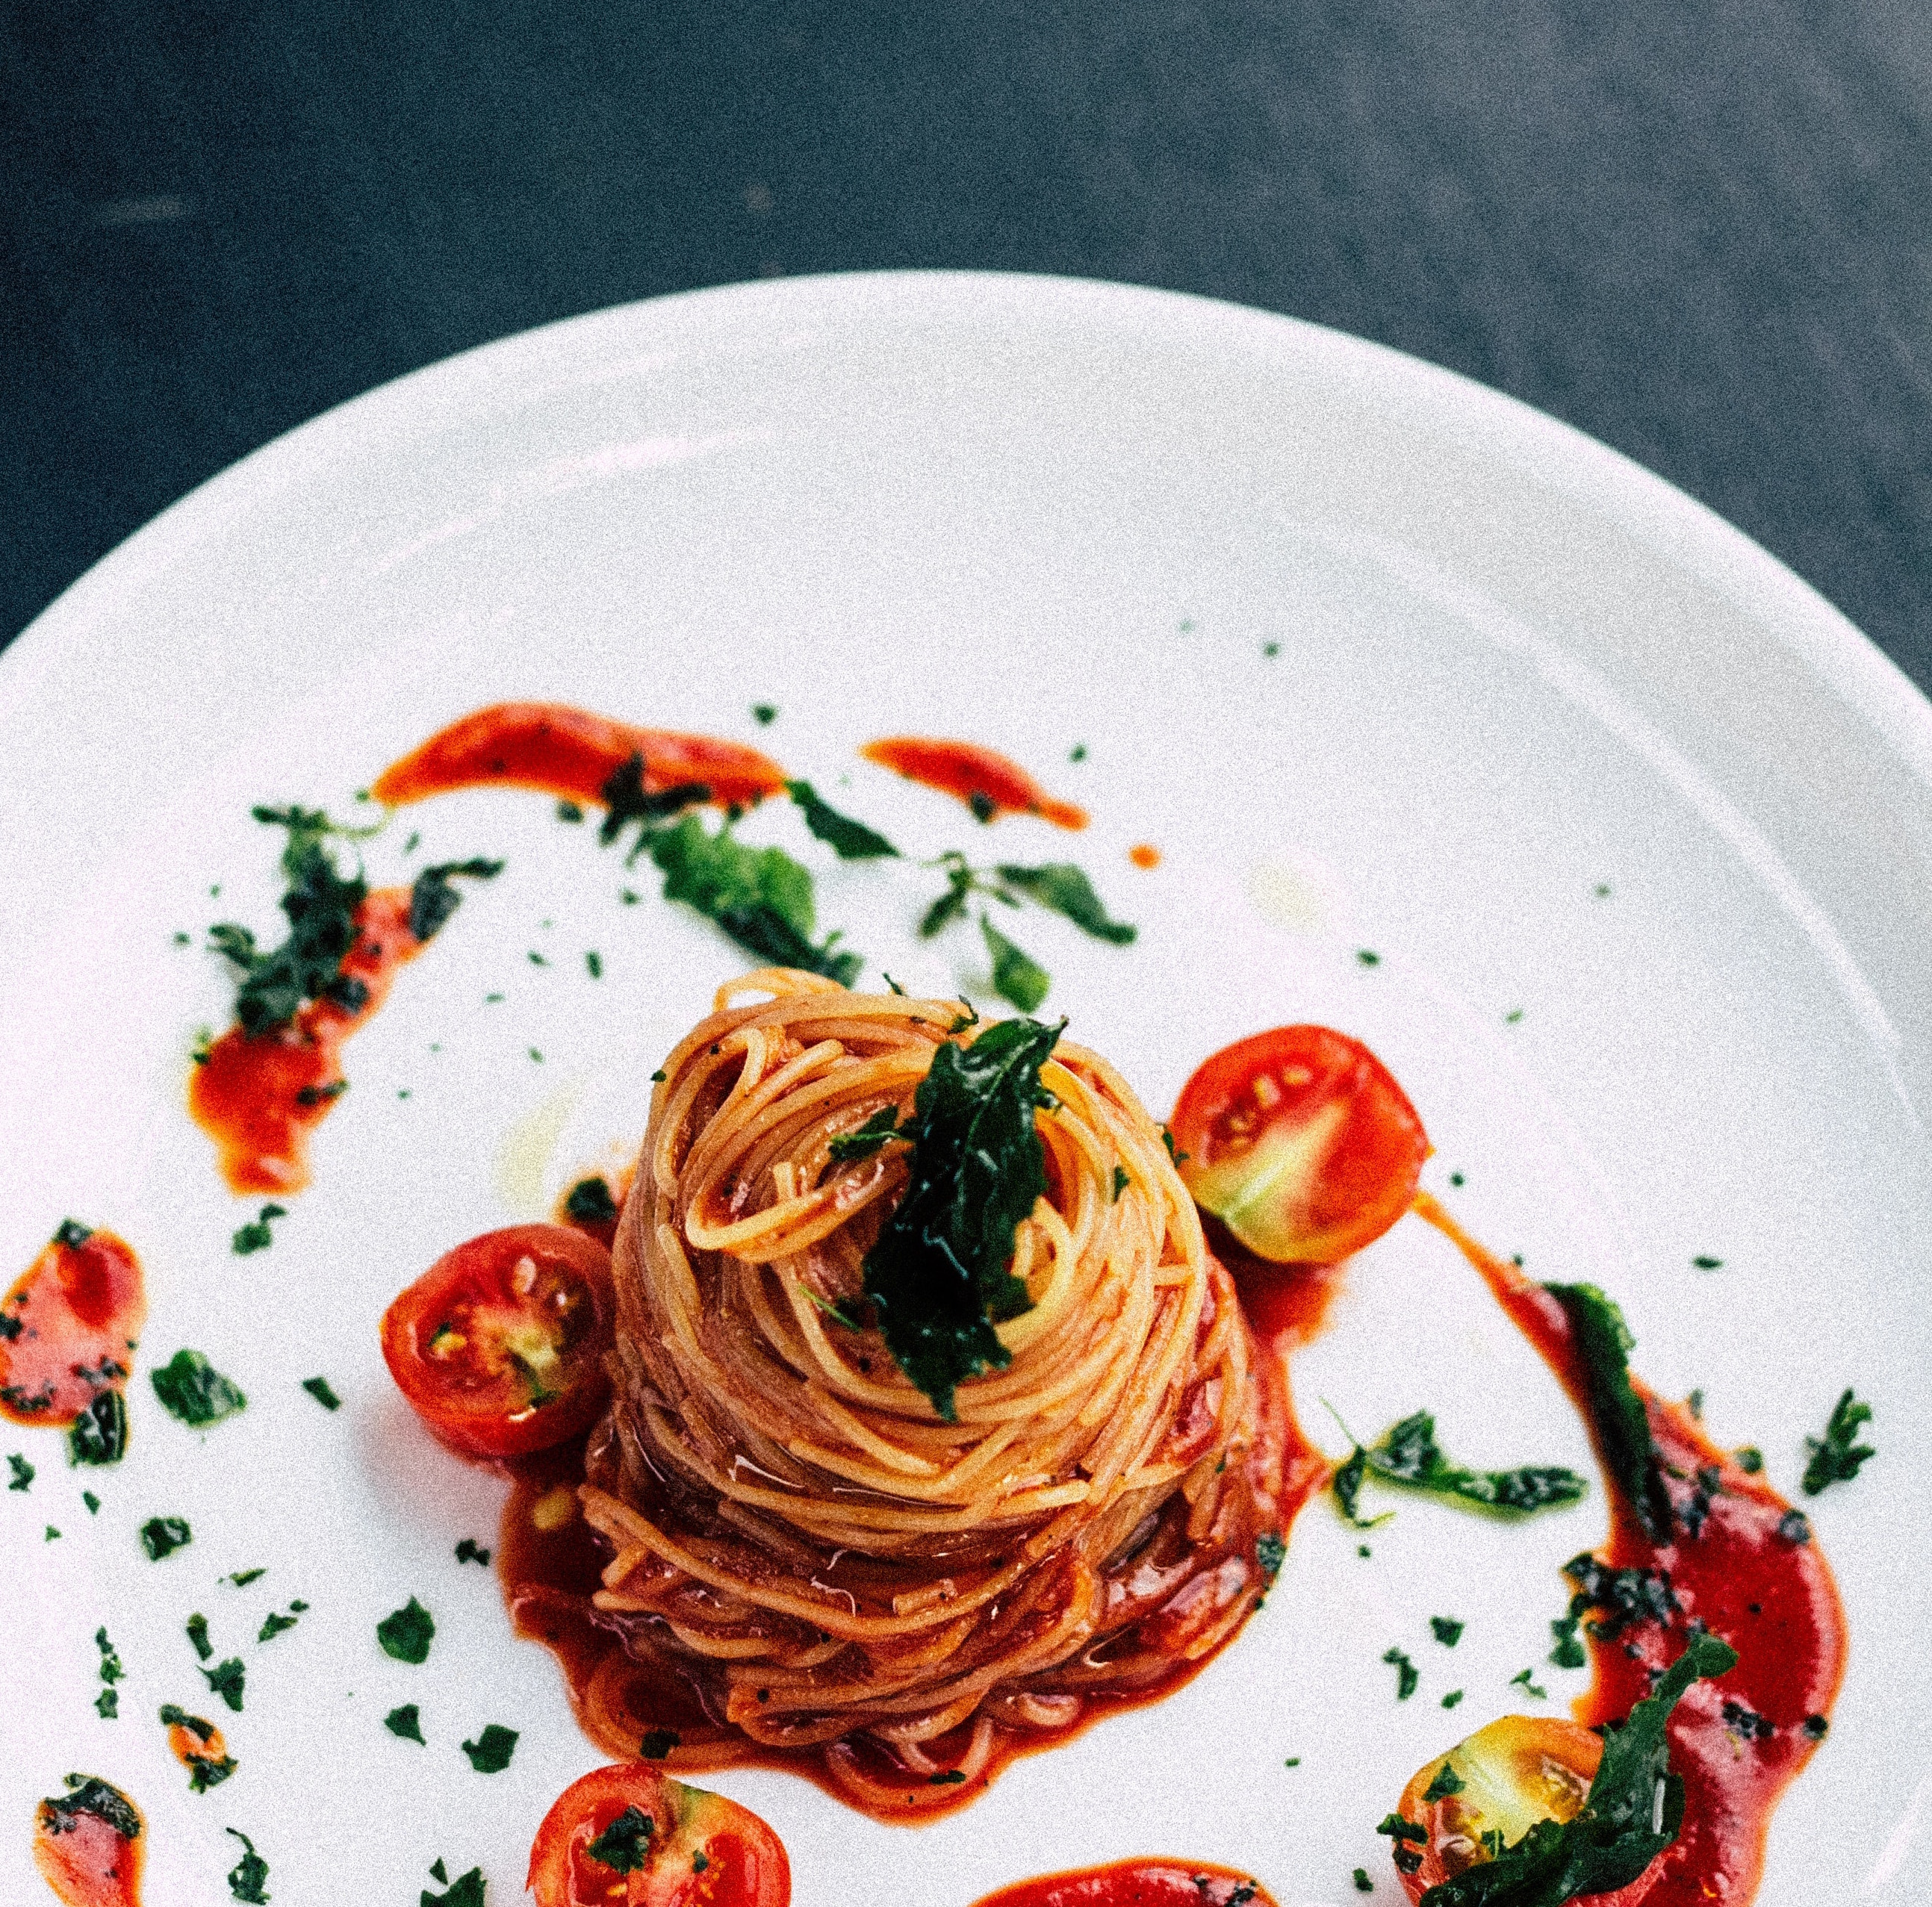 A spaghetti dish made in Italy